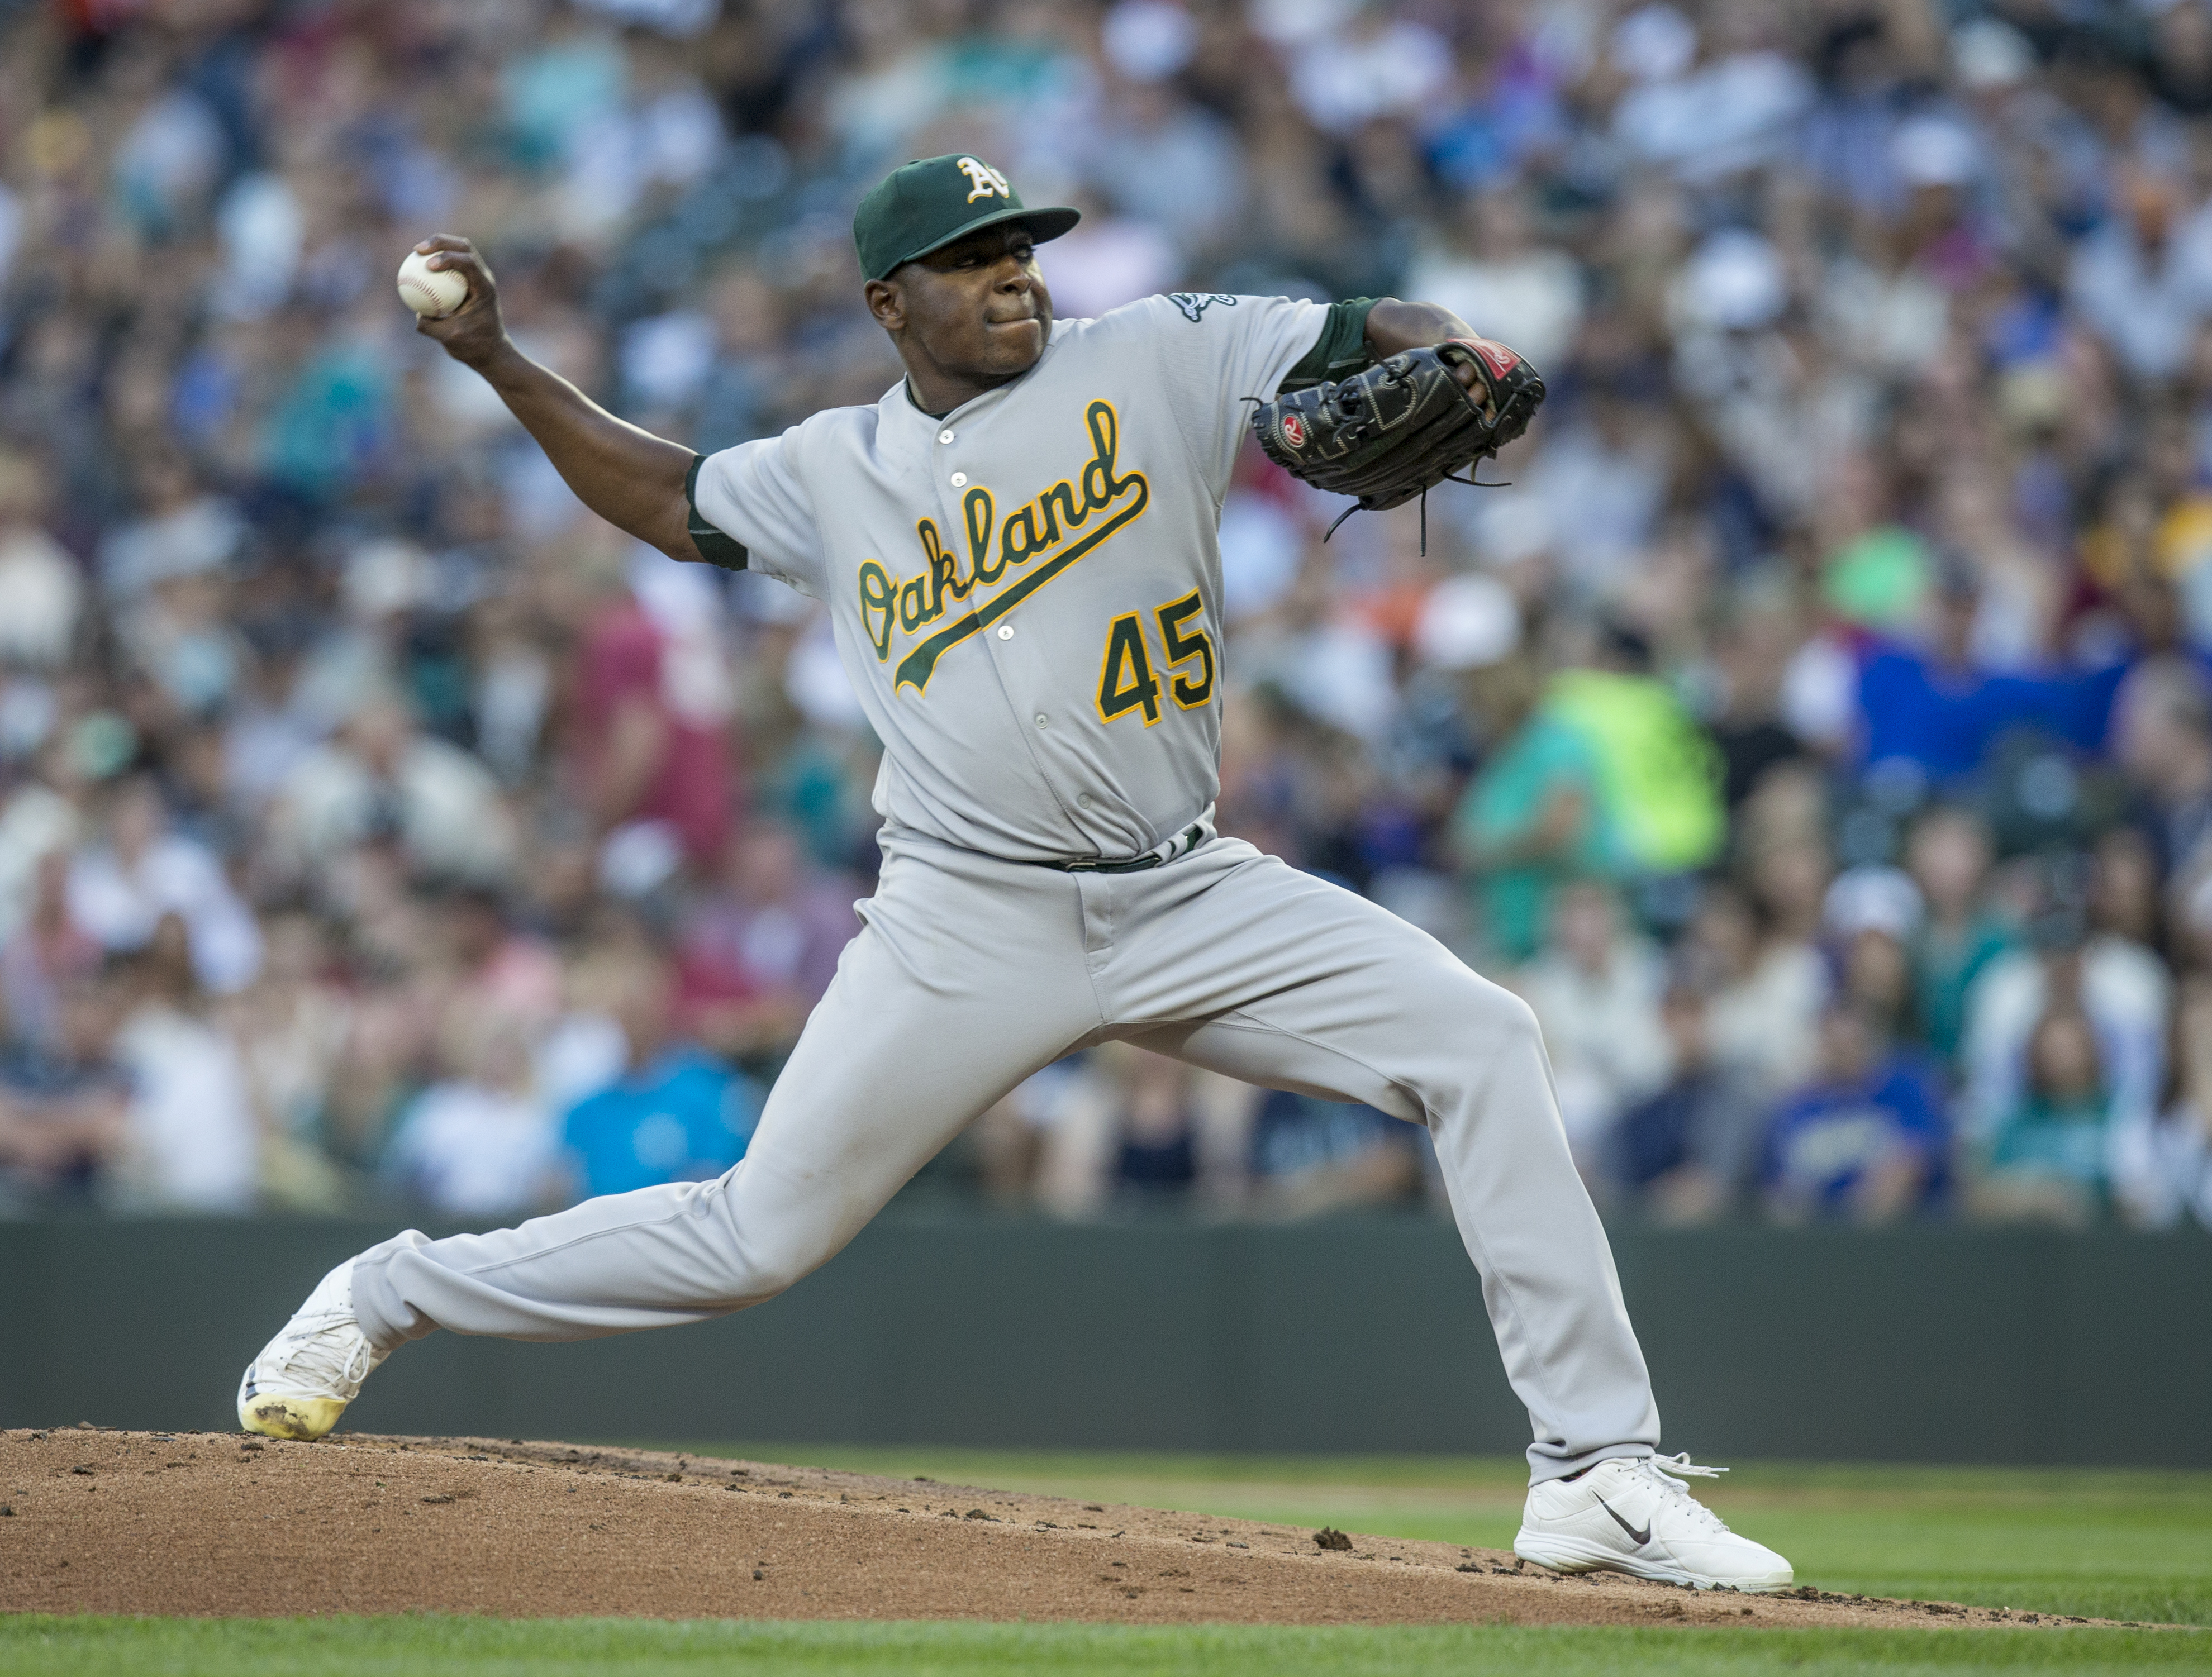 Oakland Athletics starter Jharel Cotton winds up during the first inning of a baseball game against the Seattle Mariners on Saturday, Sept. 2, 2017, in Seattle. (AP Photo/Stephen Brashear)